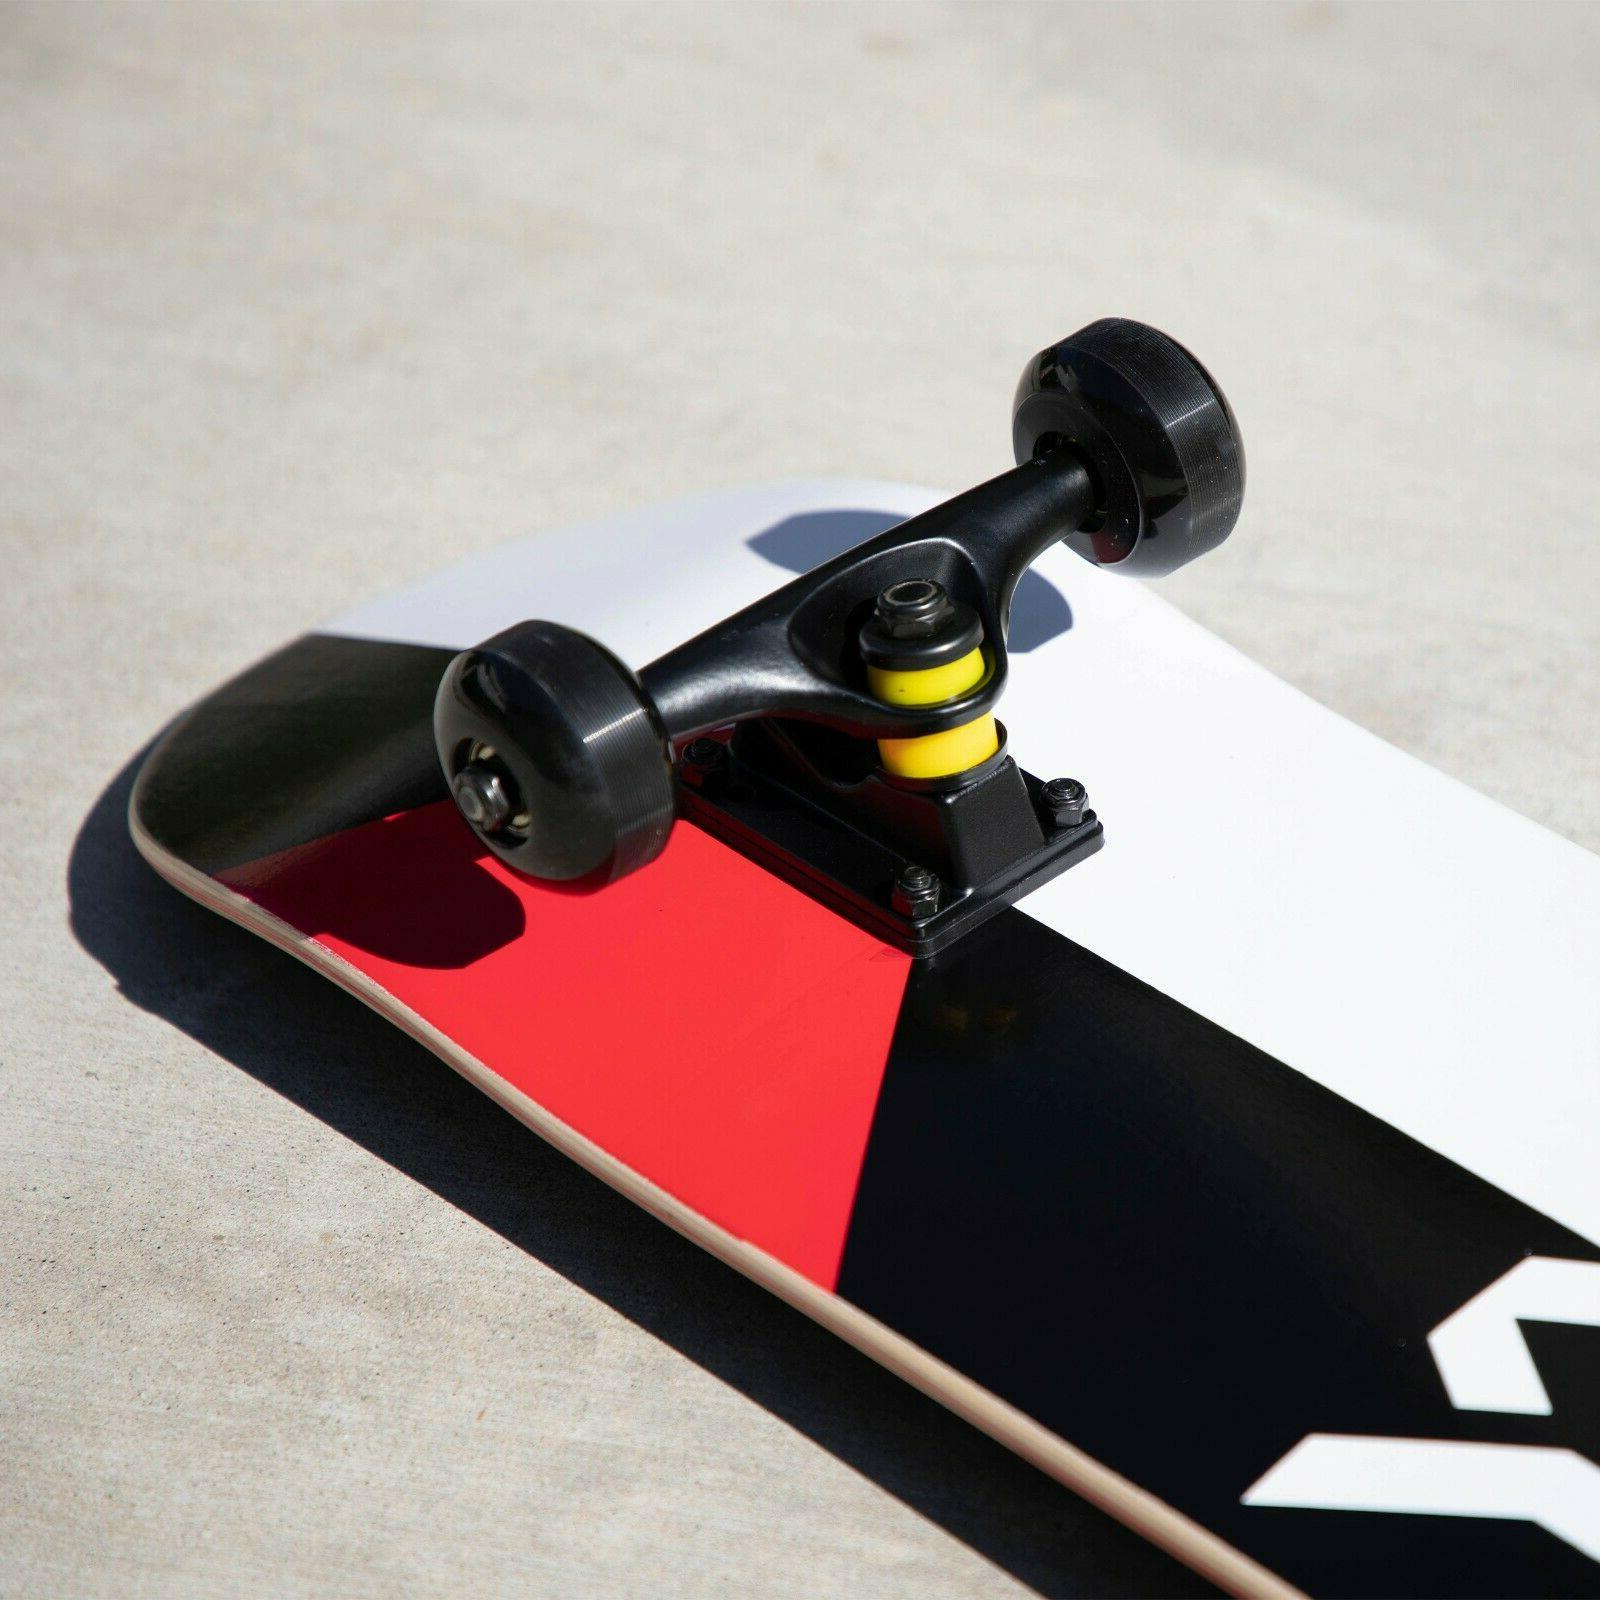 Skateboards 31 for Adults Girls Lays Deck Pro